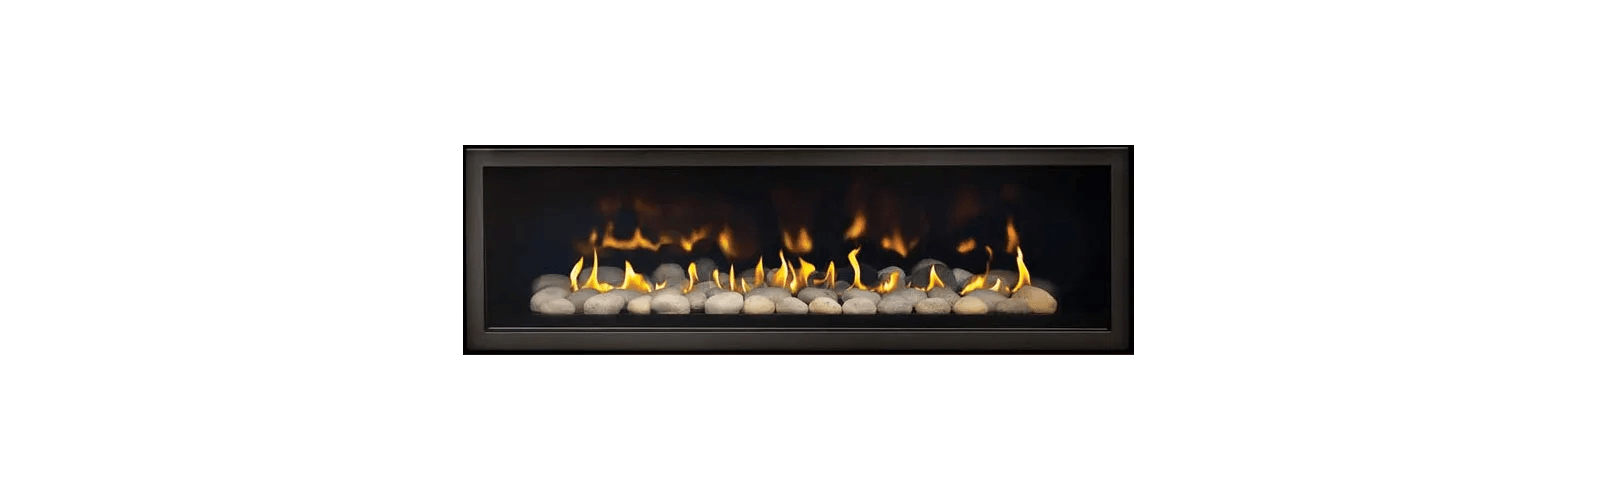 Btu Gas Fireplace Propane Gas Fireplace Products On Sale